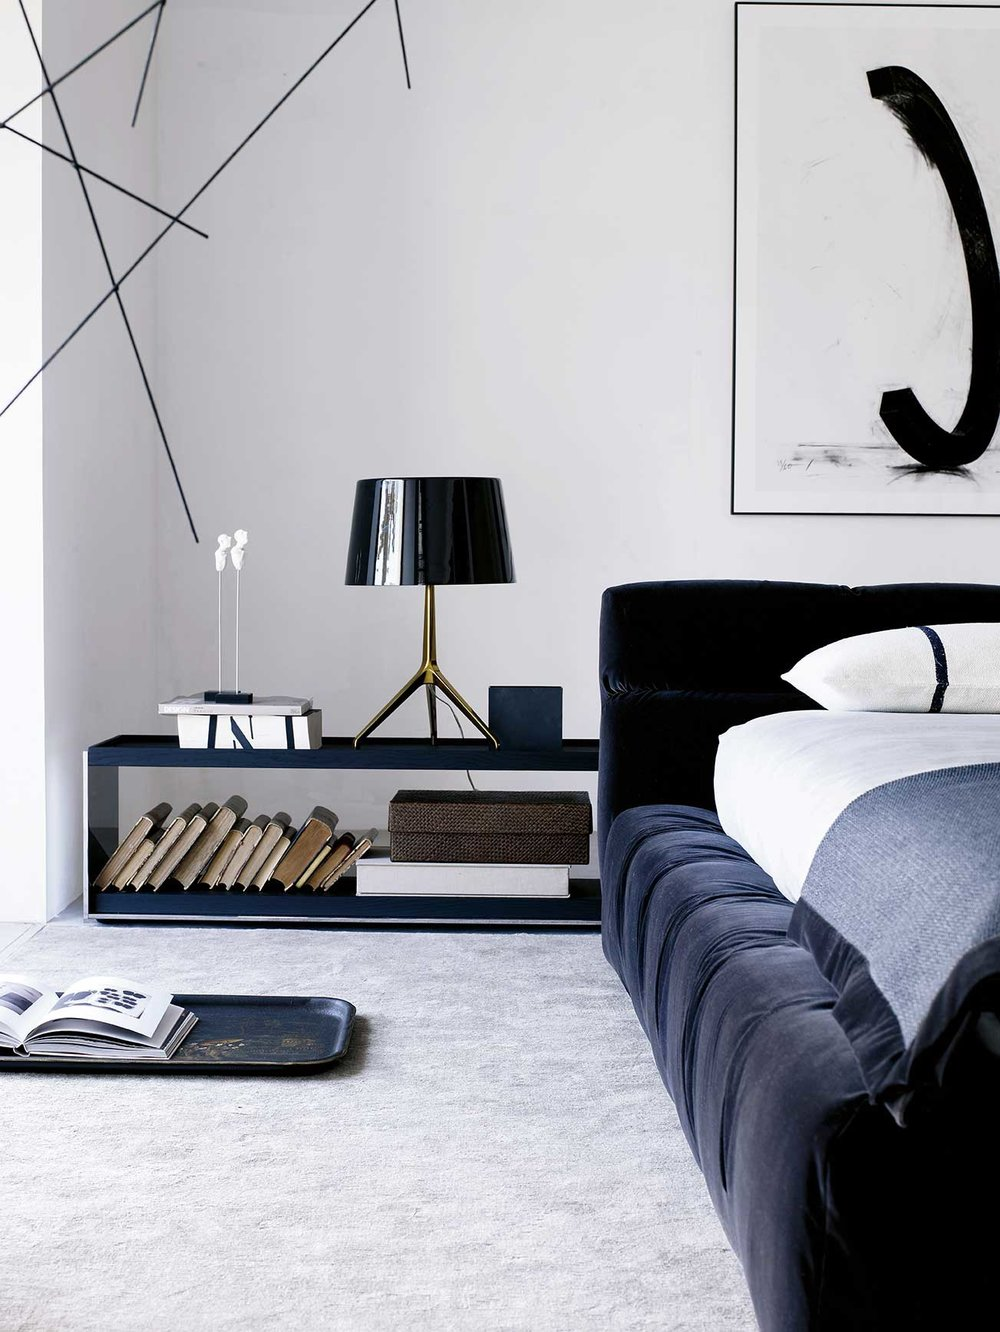 A   Foscarini Lumiere table lamp   sits on a large side table beside a   B&B Italia Tufty-Bed  .